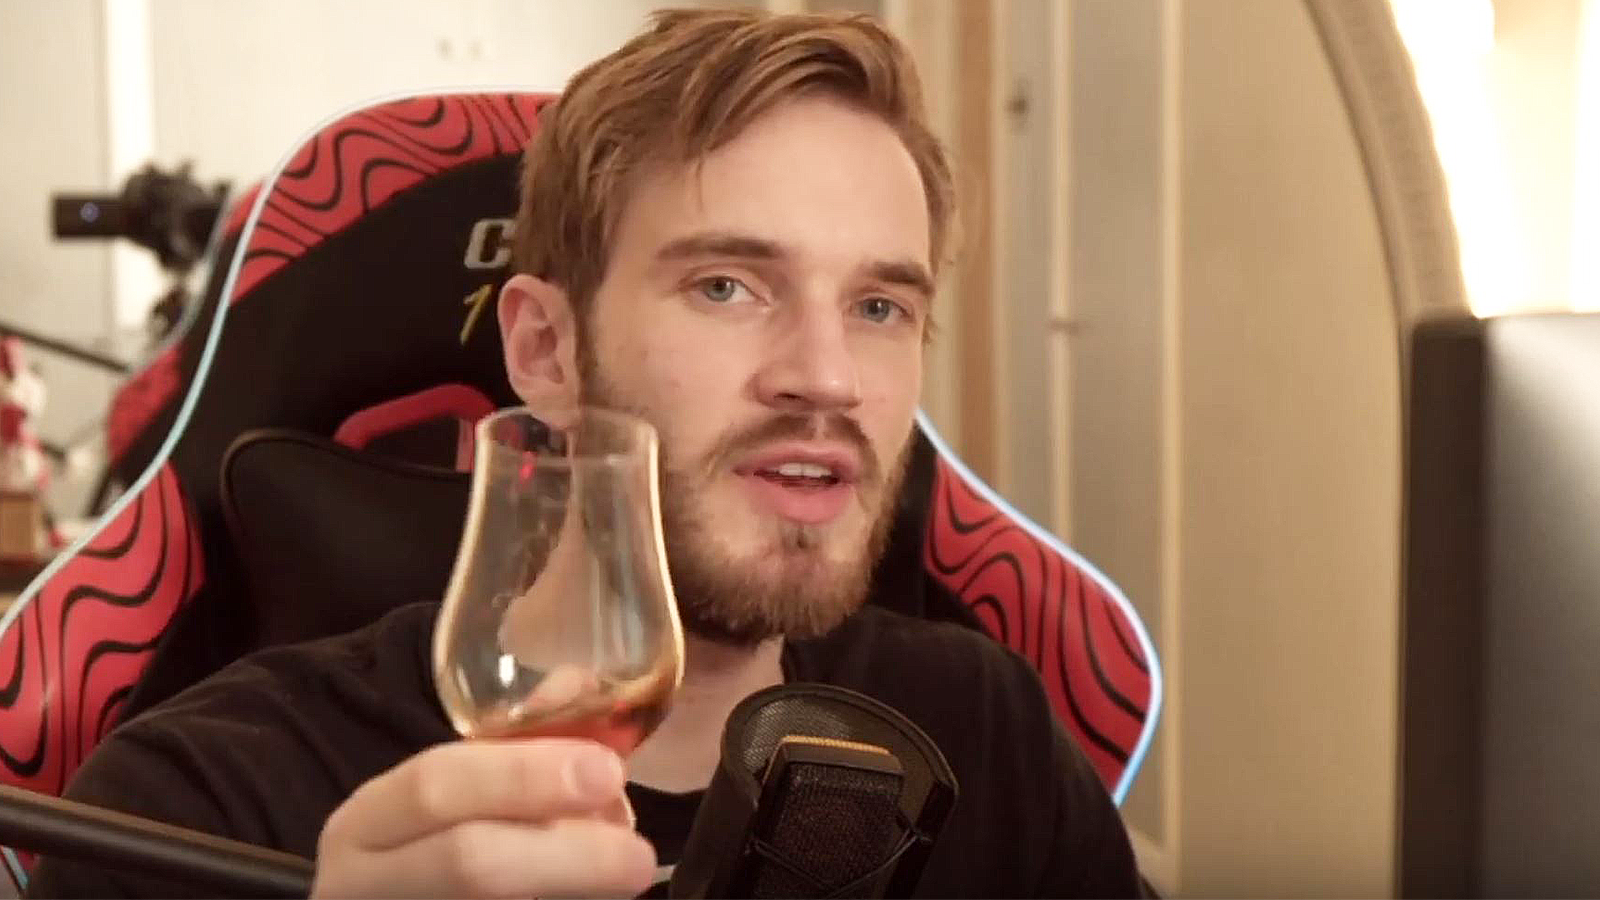 PewDiePie toasts his viewers after announcing his YouTube hiatus